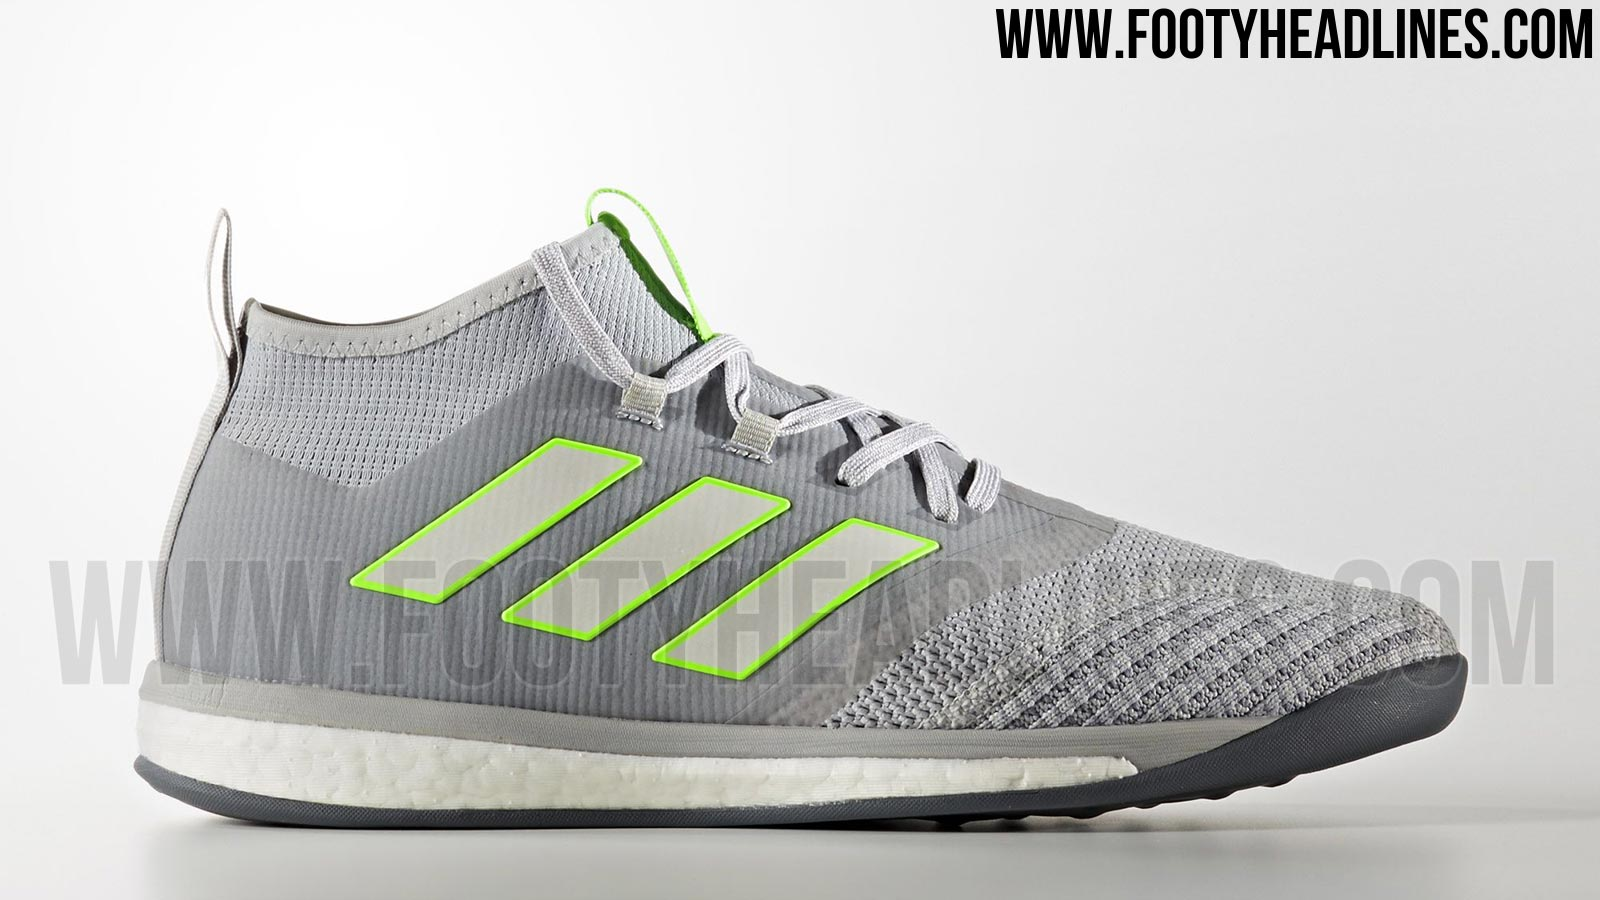 lowest price edd7c f1310 Full Adidas Tango Turbocharge Collection Leaked - Leaked Soccer